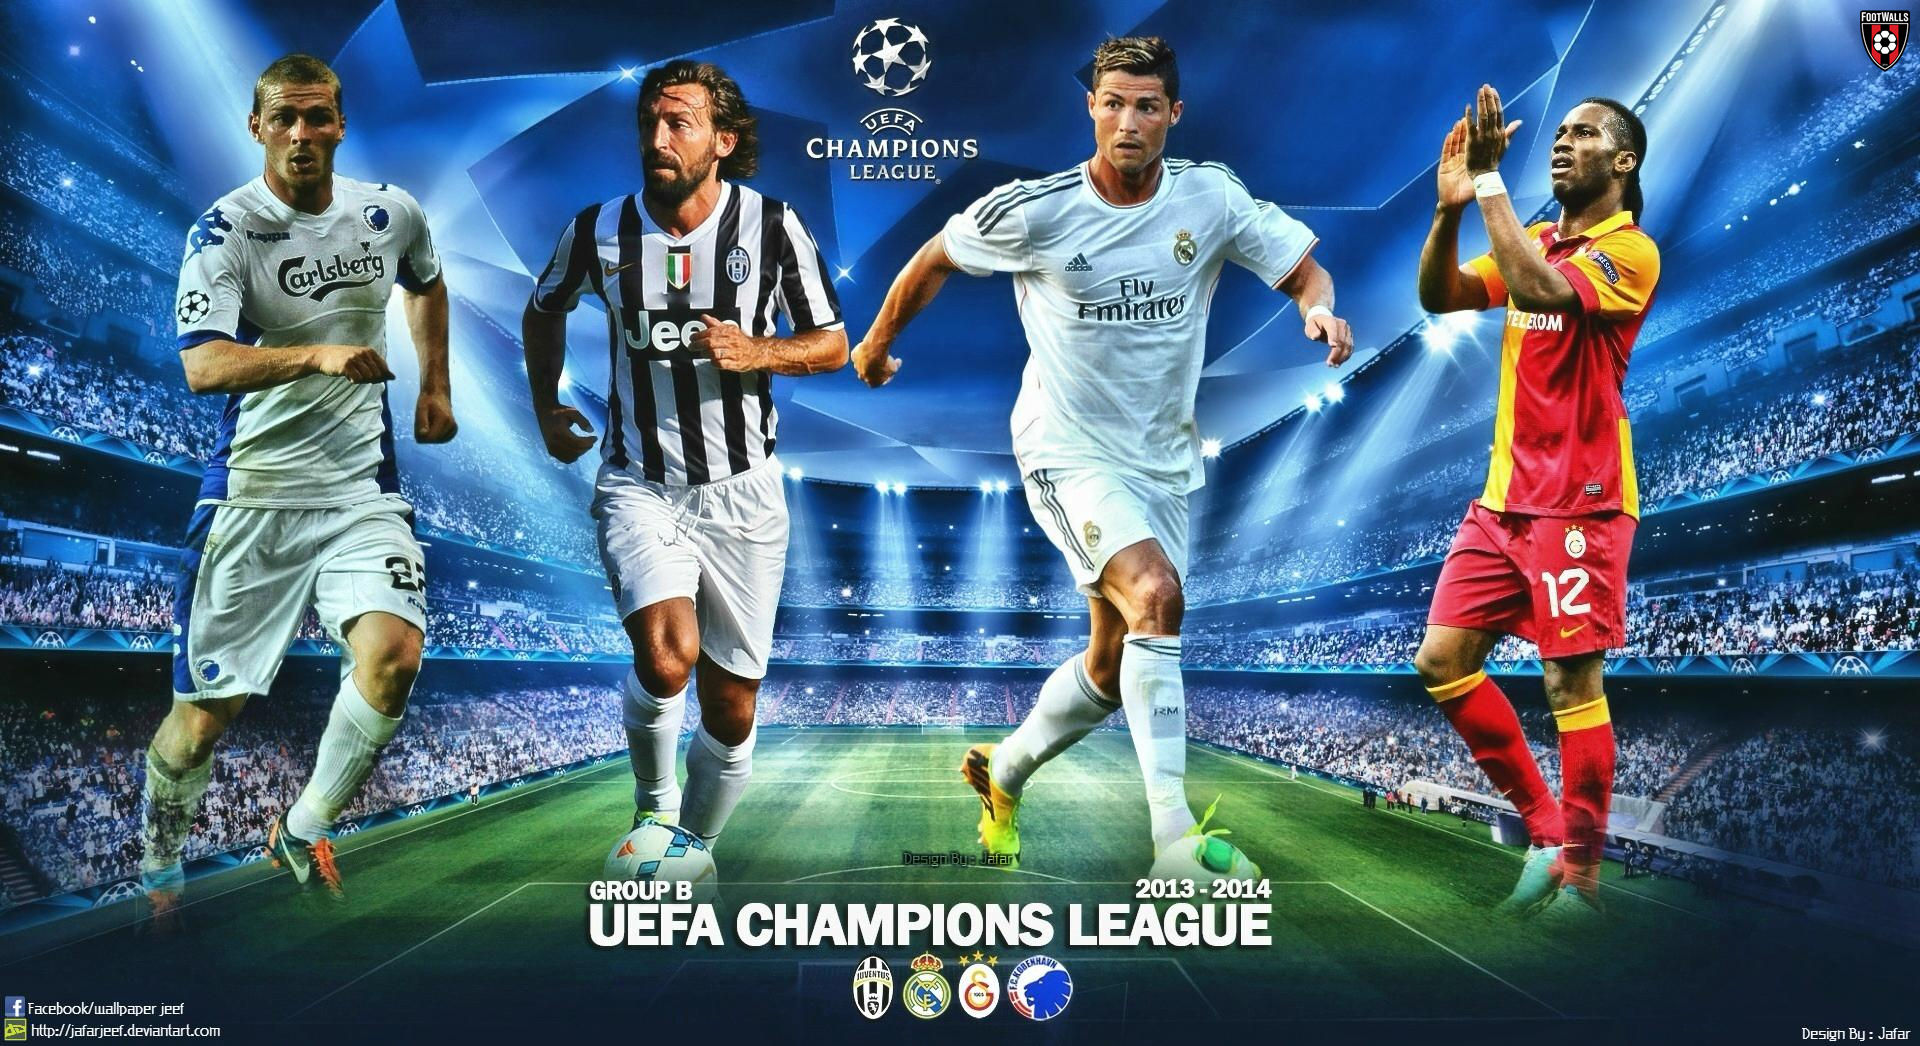 U E F A Champions League Wallpaper